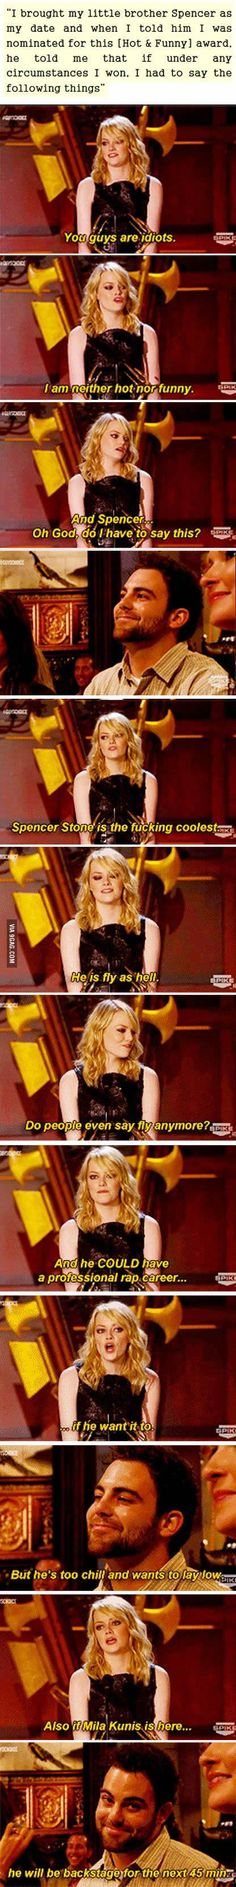 Love Emma Stone so much. I just want to be friends with her. I think we would make awesome friends